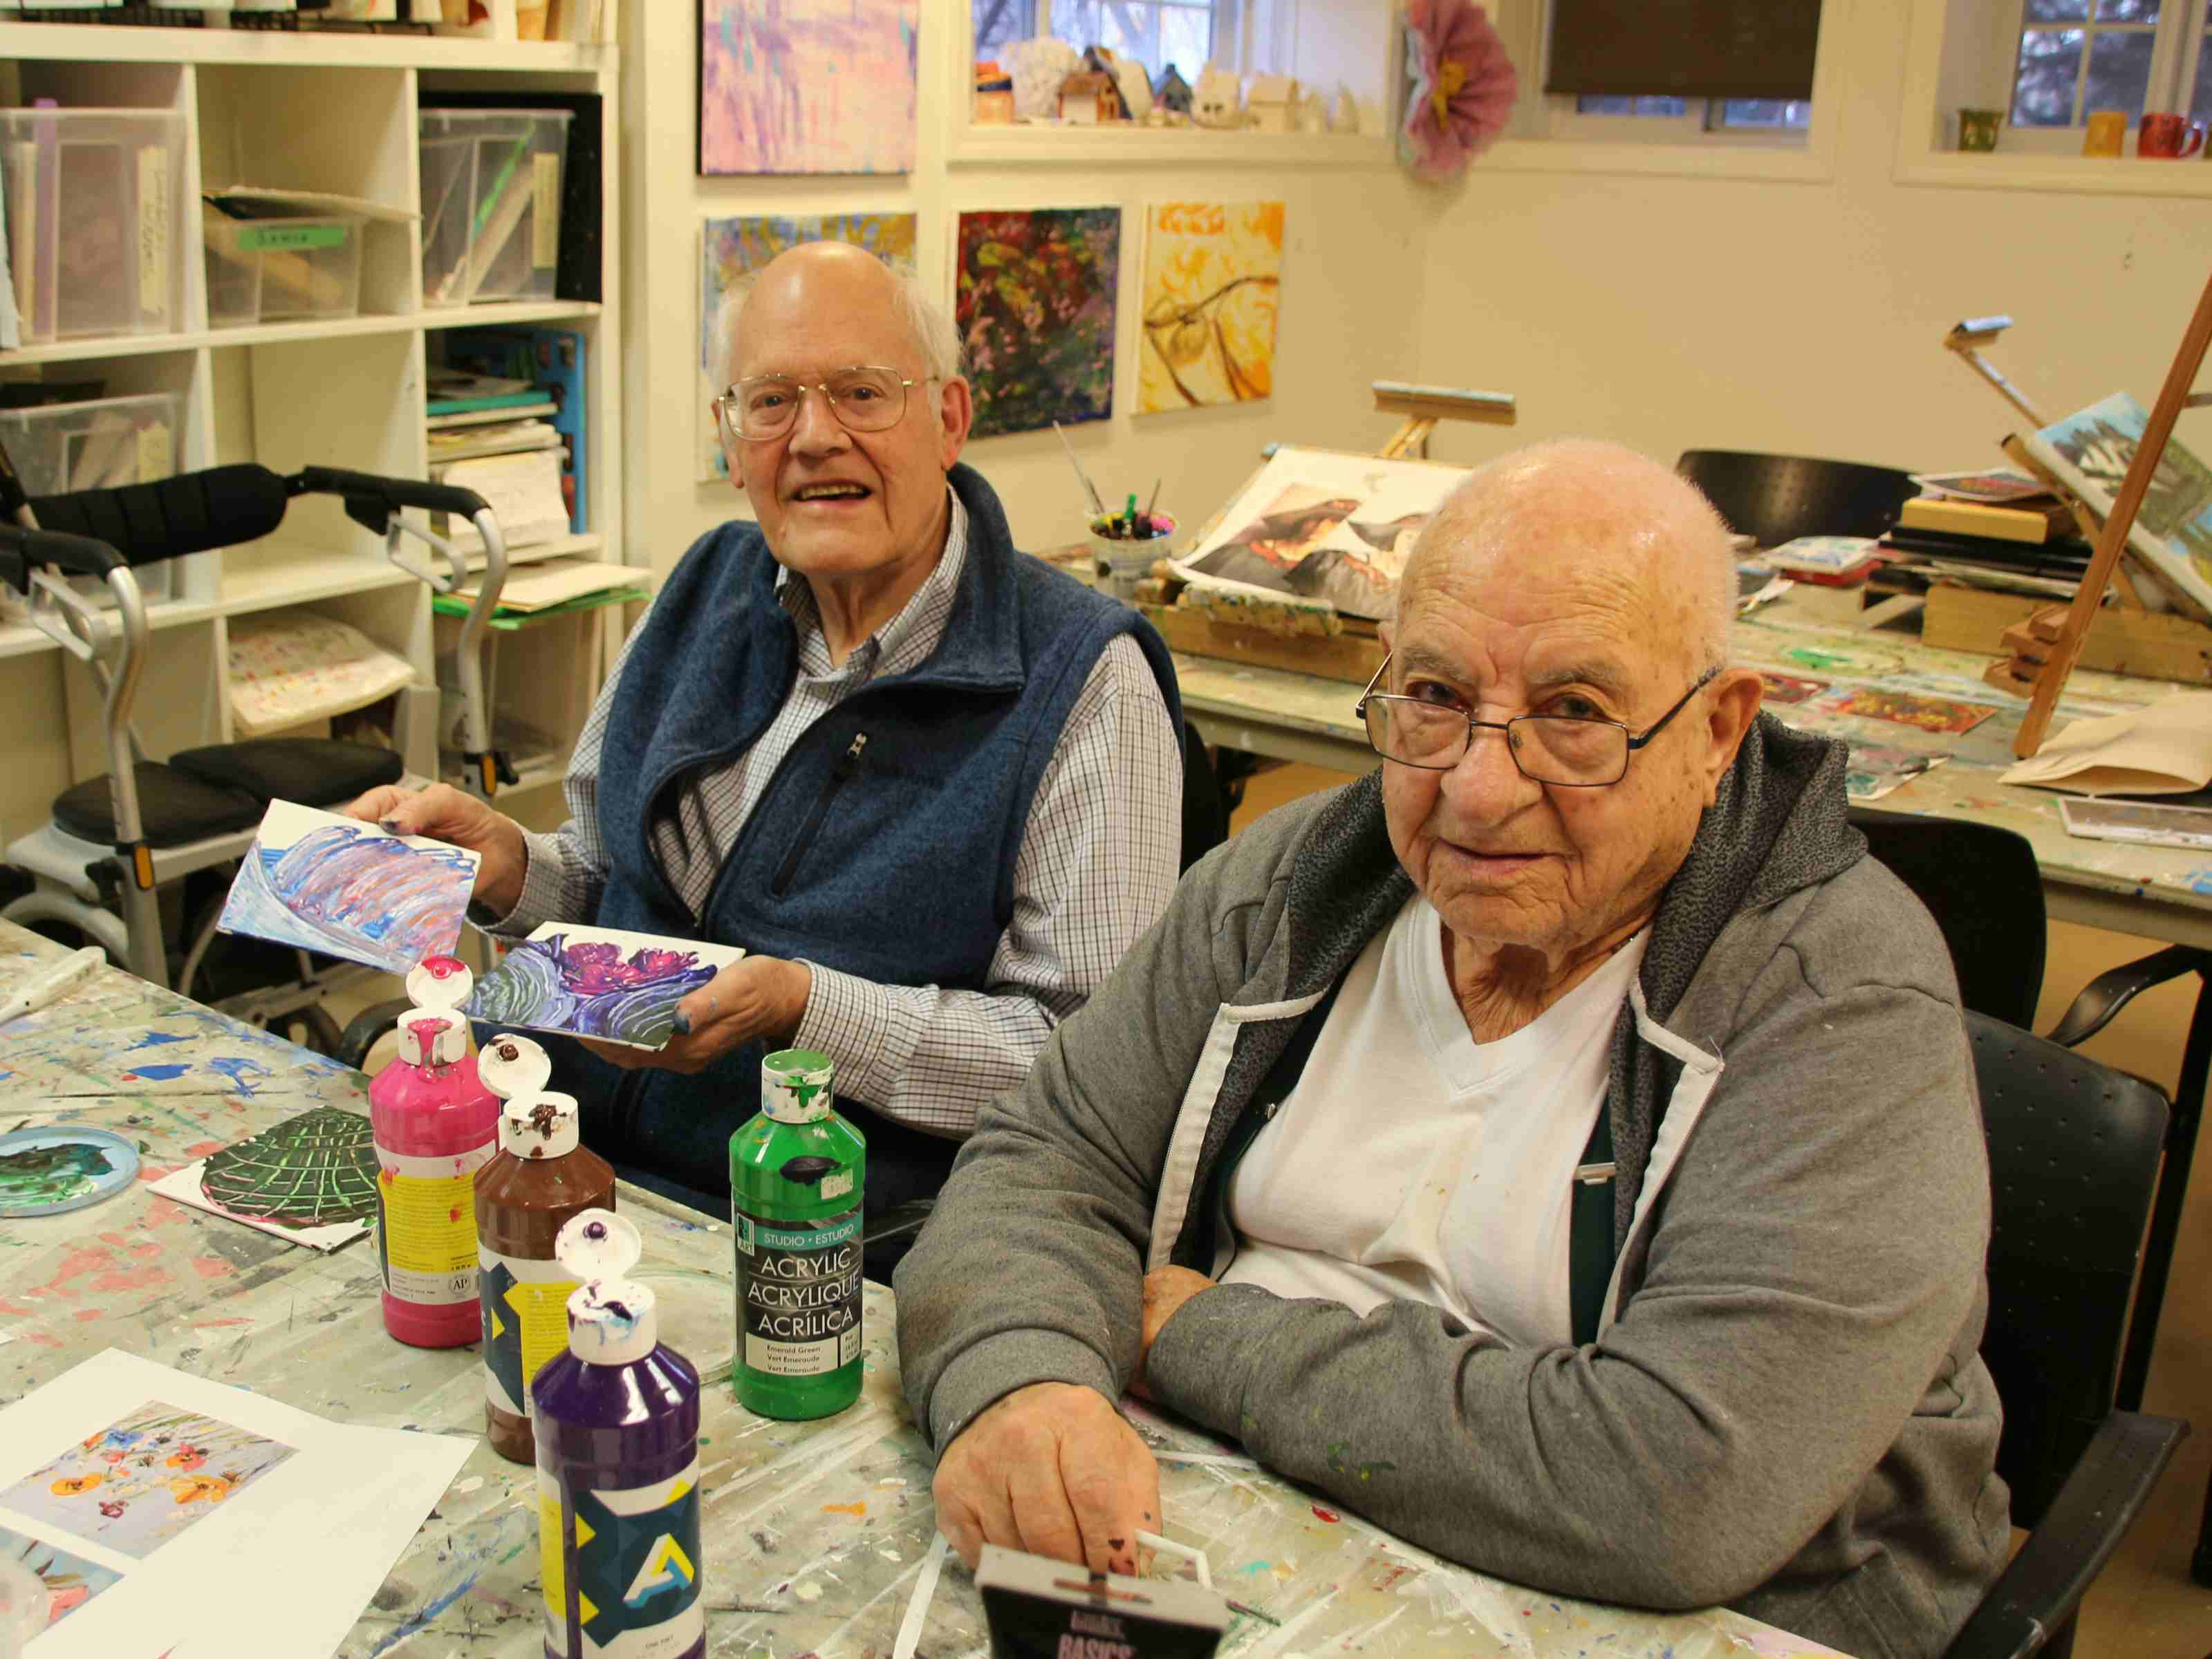 Council member Jim Dolph, left, with resident Carlo Romano in the Garrison Green art studio